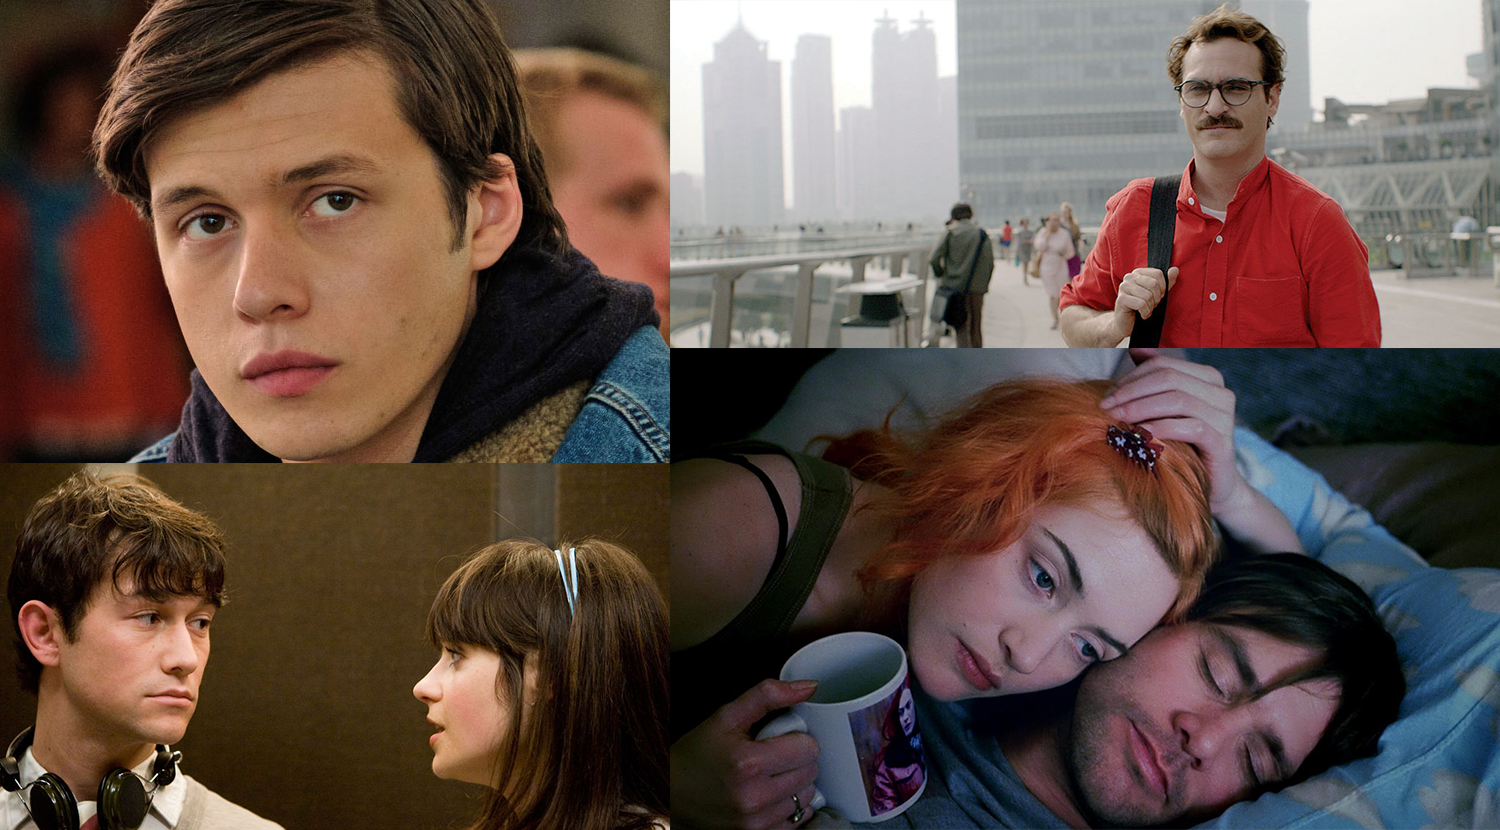 Love isn't perfect, but there's a thing or two to learn from the characters of these movies.